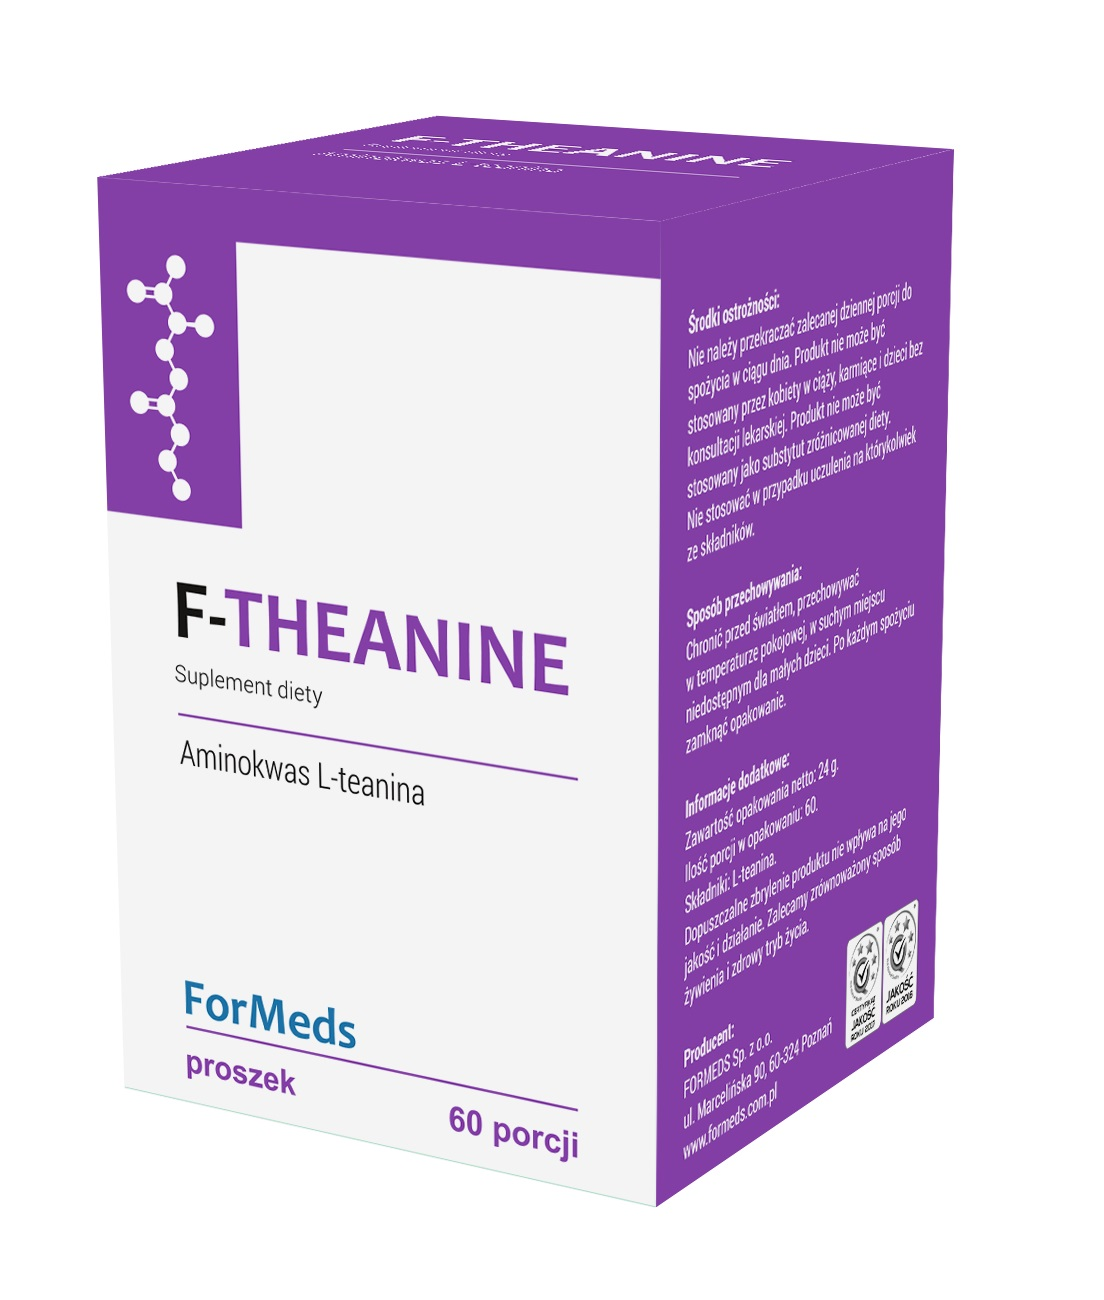 F-THEANINE